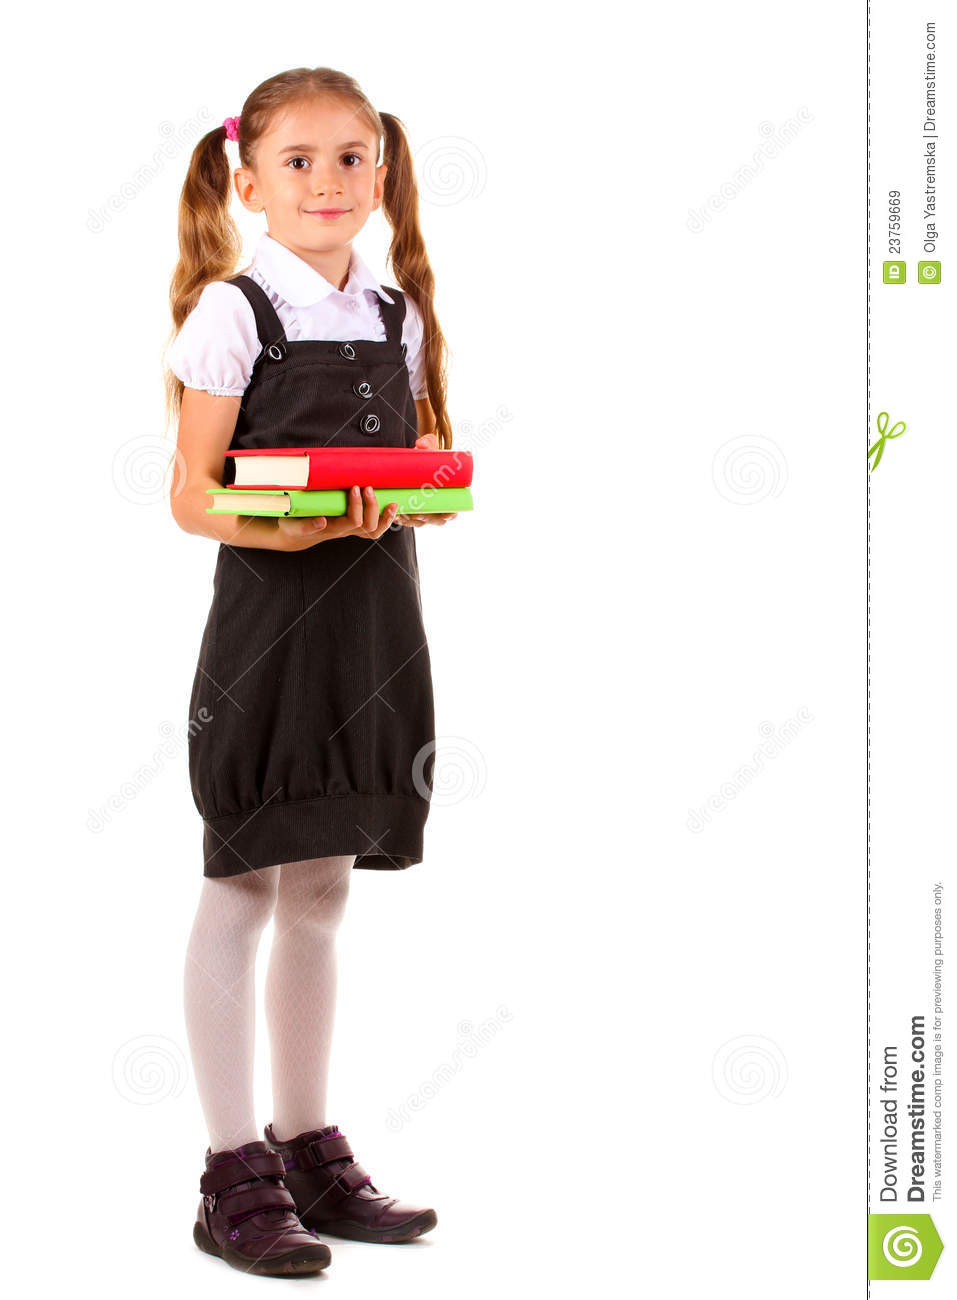 Download little girl school uniform stock photos. Affordable and search from millions of royalty free images, photos and vectors.